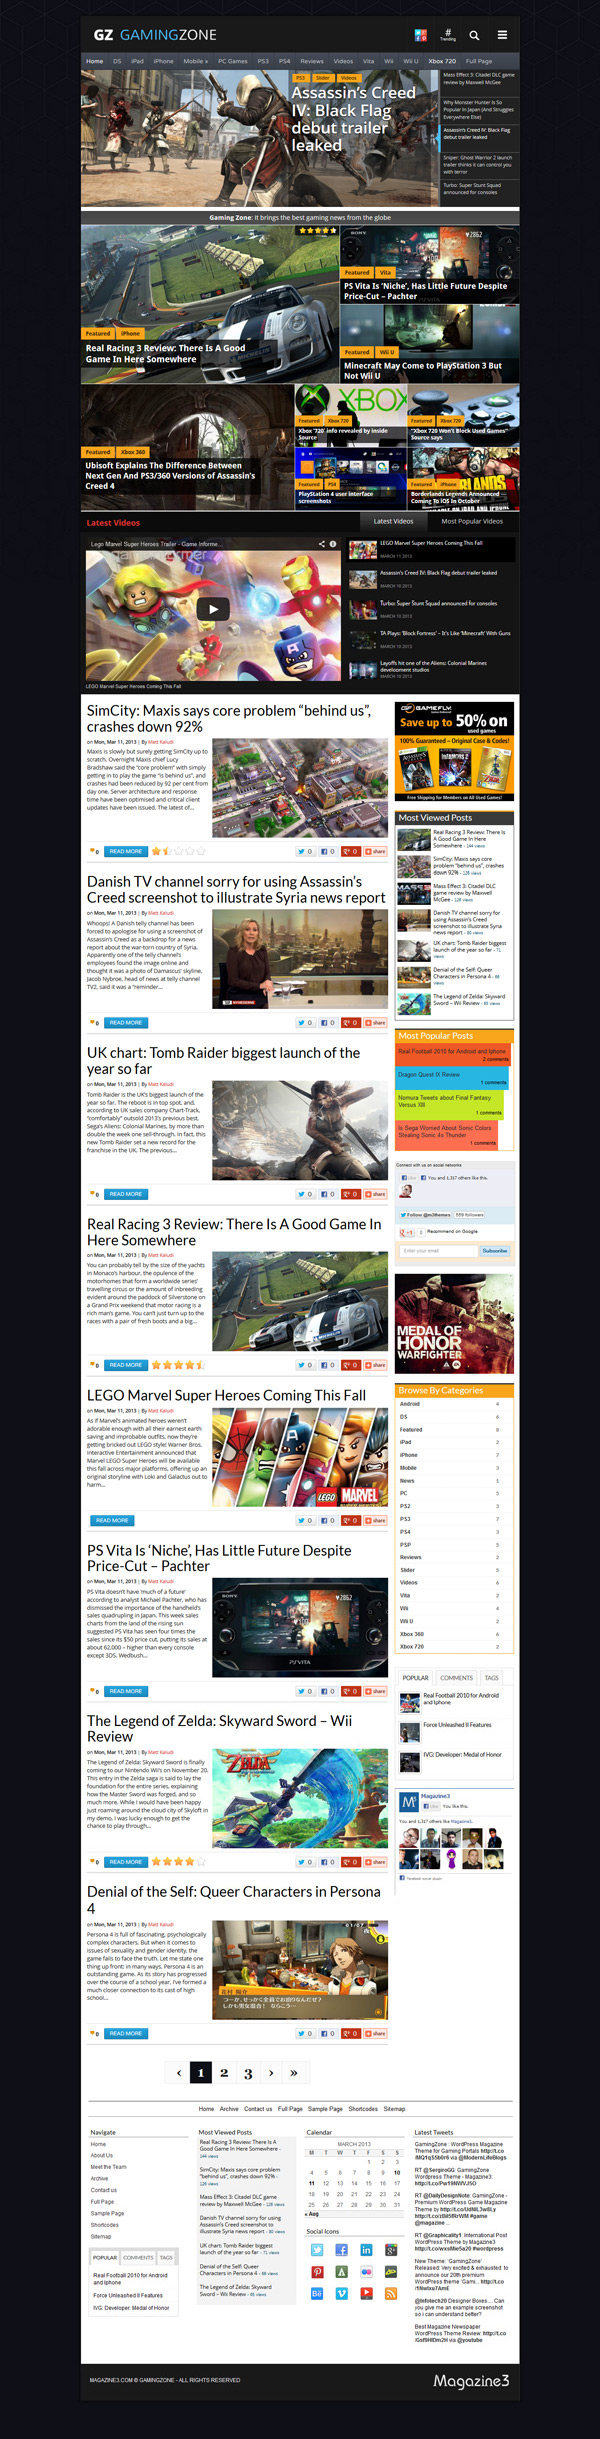 Gaming Zone WordPress theme